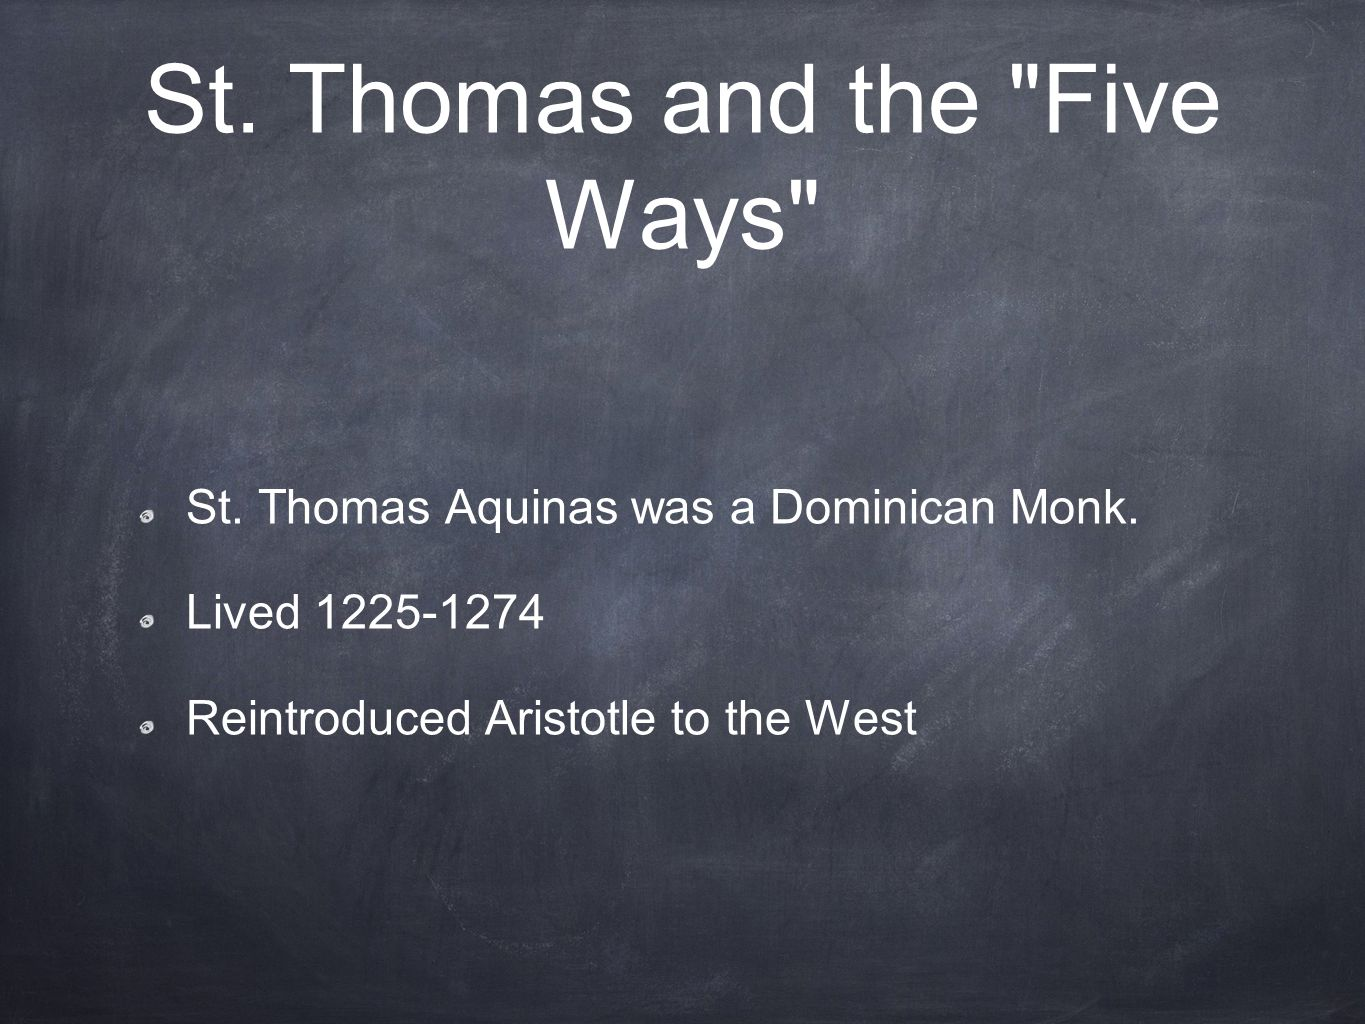 St. Thomas and the